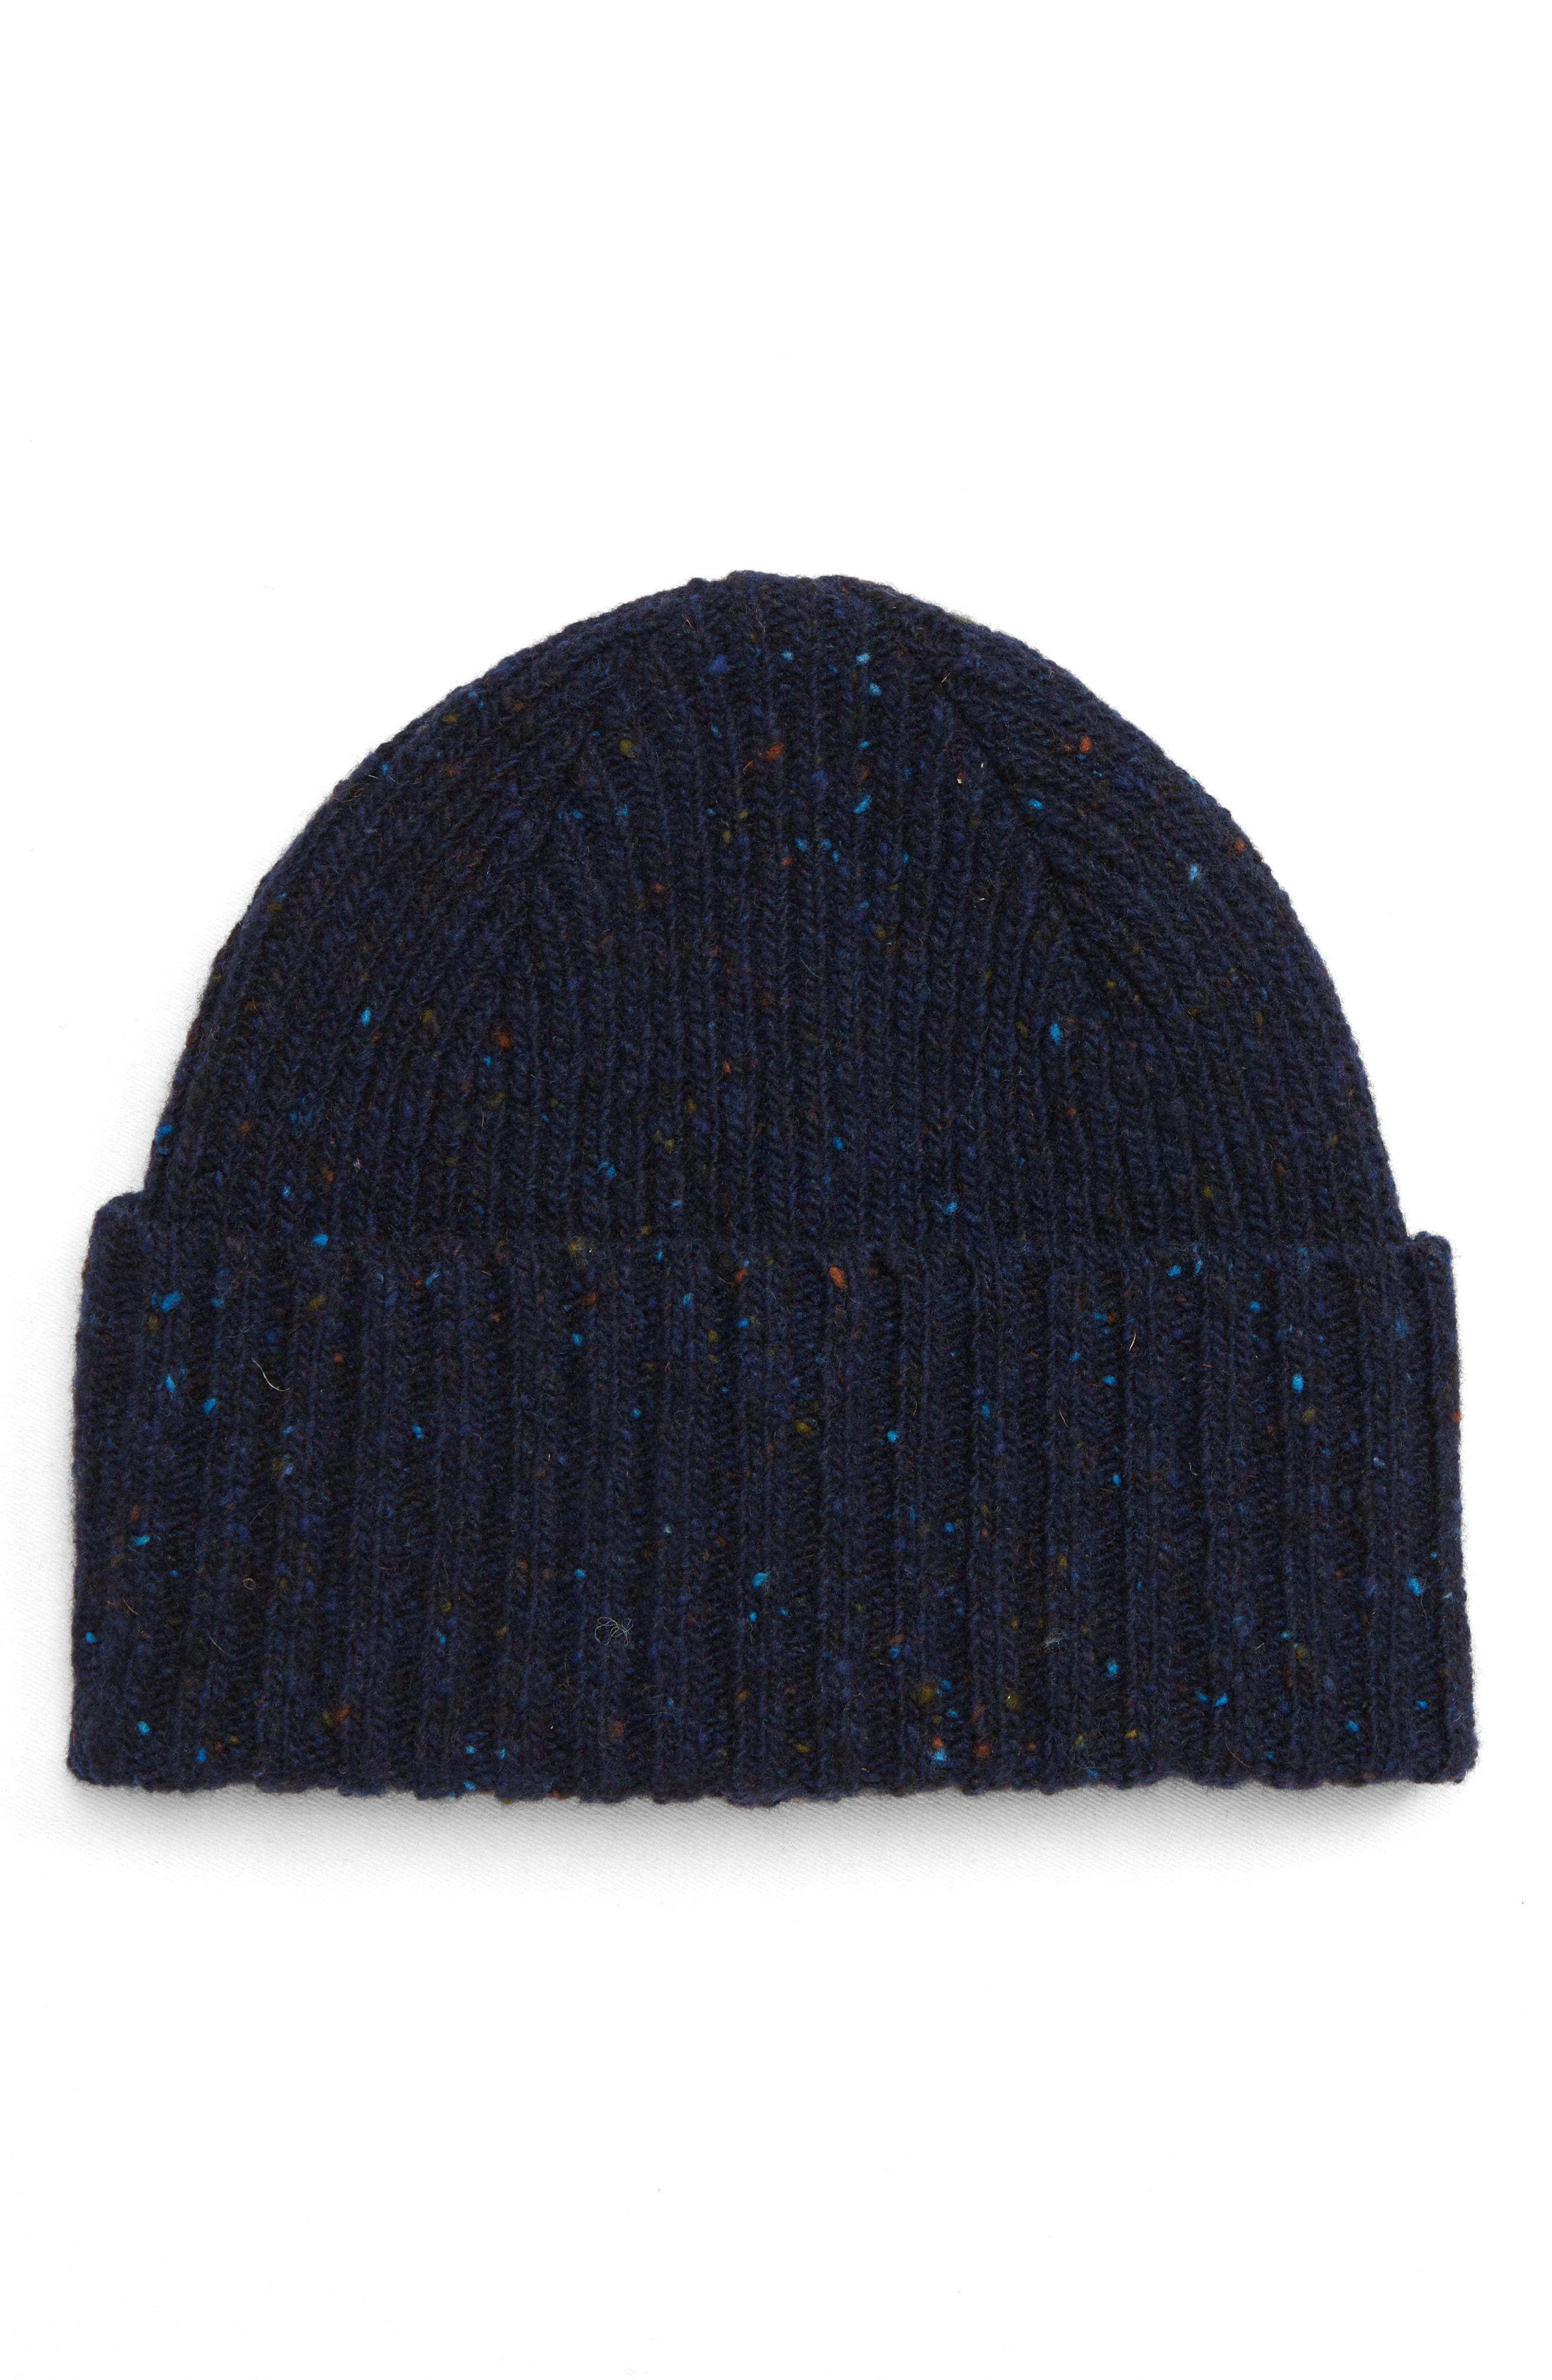 Lyst - Drake S Drakes Donegal Wool Beanie - in Blue for Men 8402c59be1c8